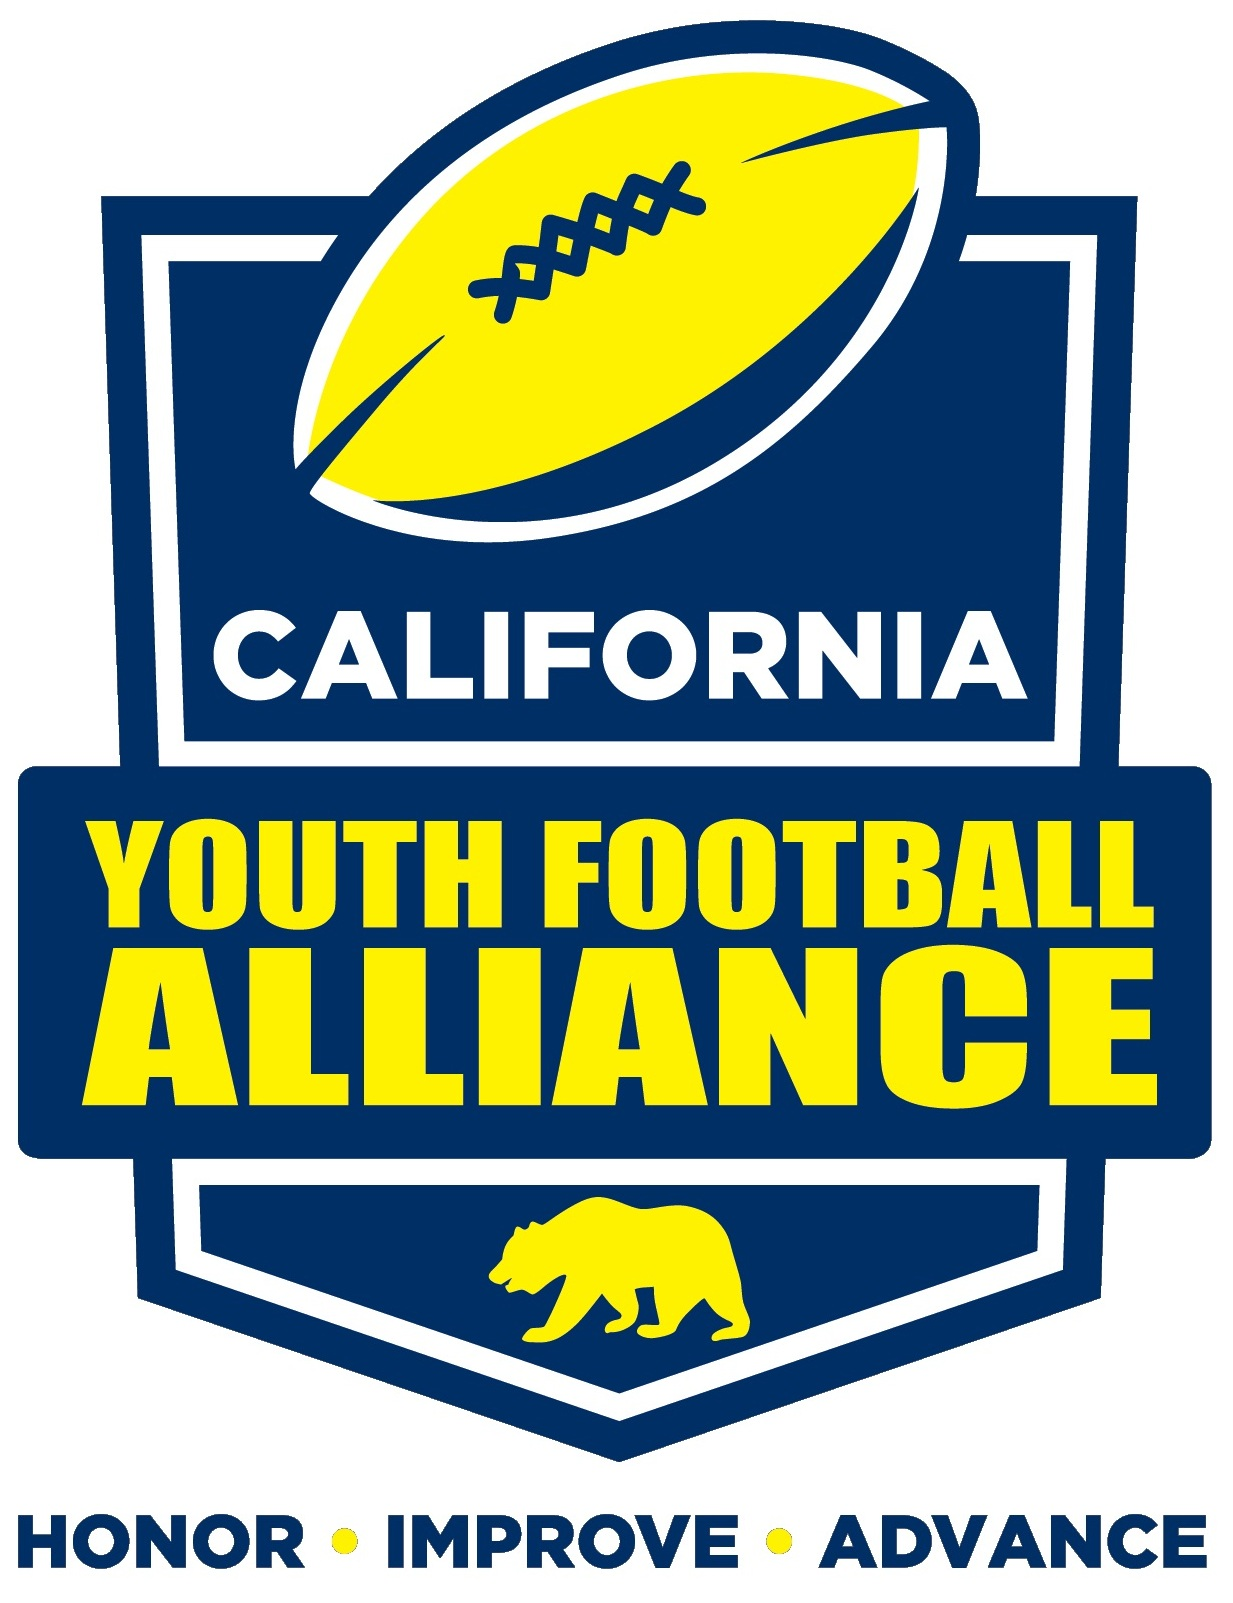 California Youth Football Alliance